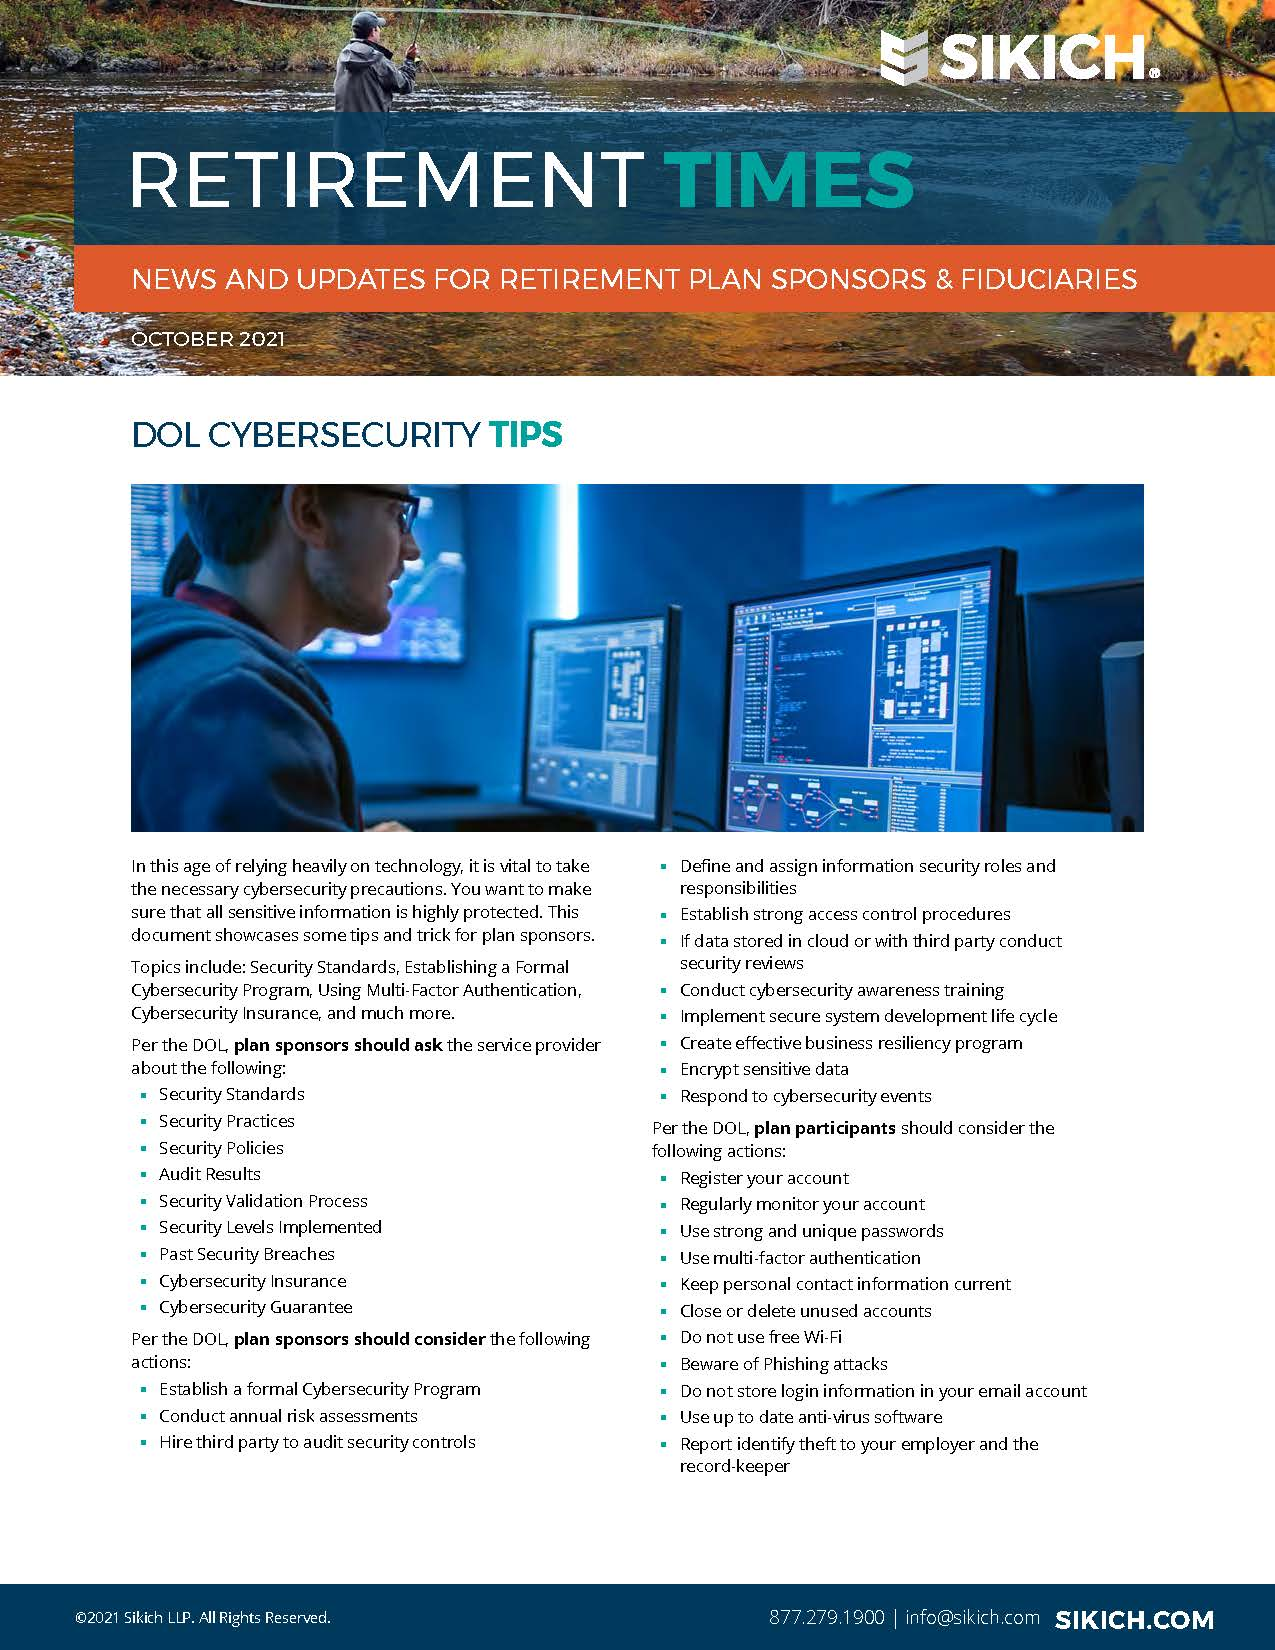 screenshot of the cover image of the Retirement Times Newsletter October 2021 edition